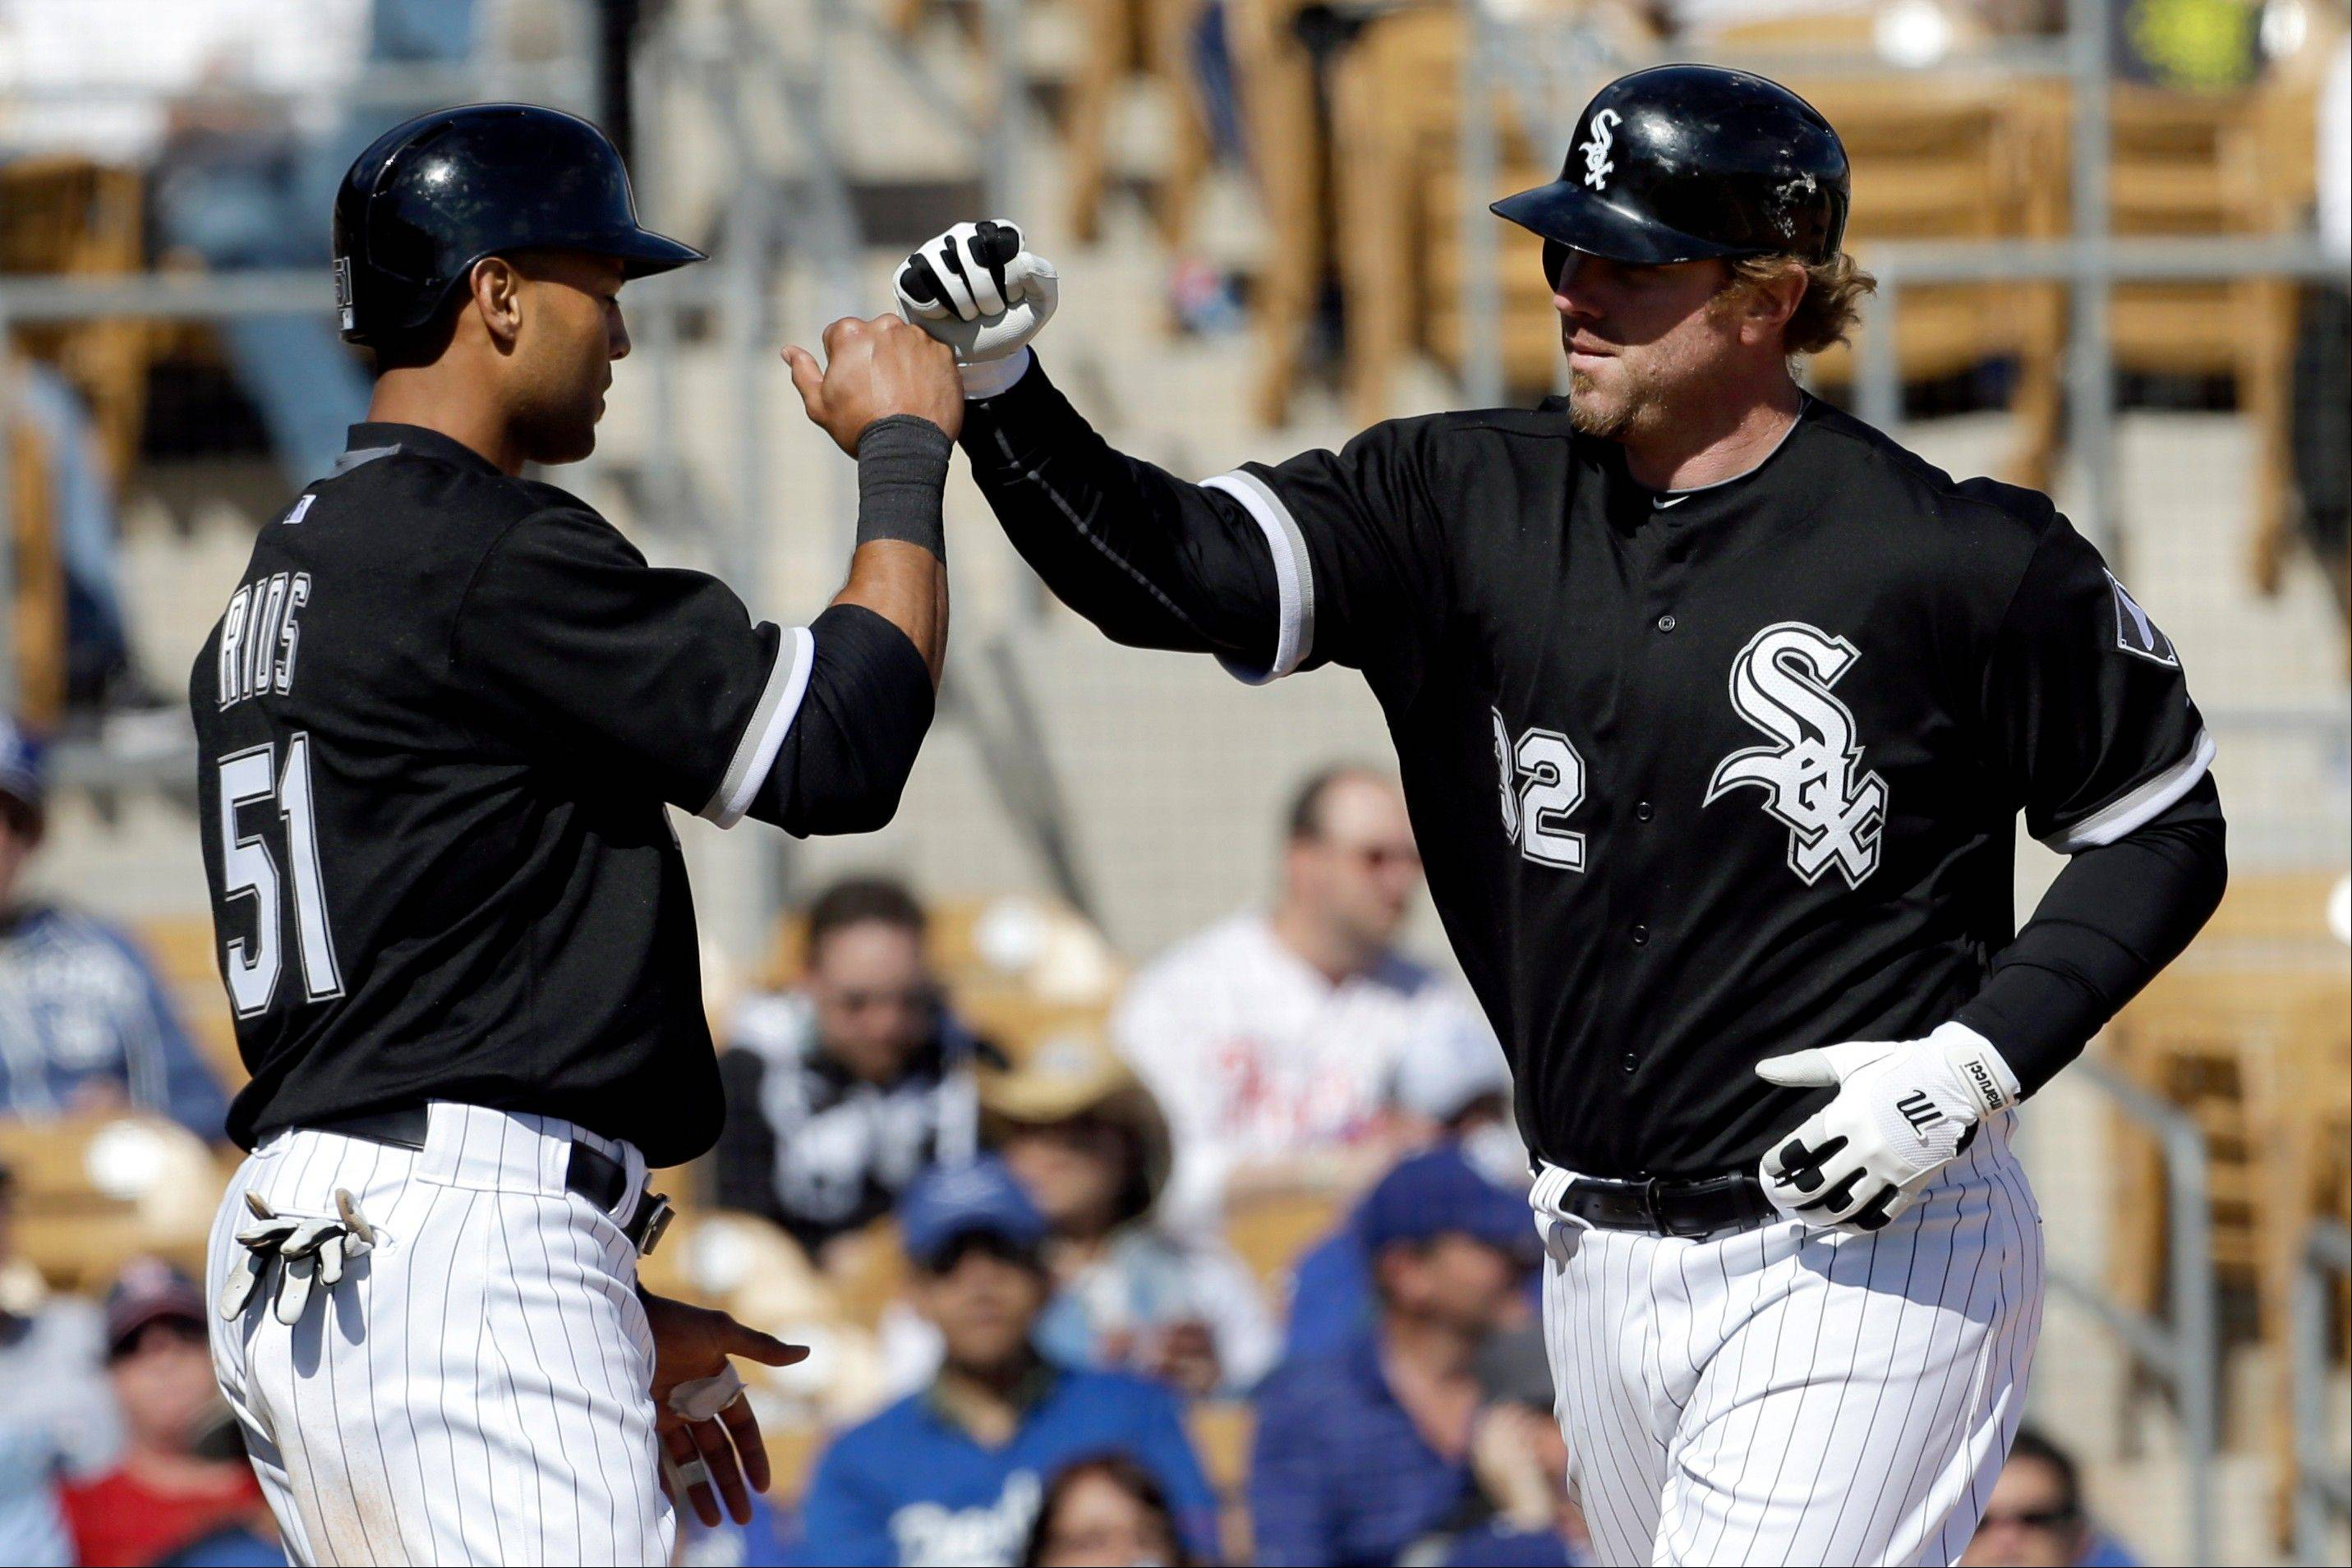 Adam Dunn, right, belted 41 home runs and drove in 96 runs to lead the White Sox, and he paced the American League with 105 walks. But Dunn also topped the major leagues with 222 strikeouts, a franchise record, and he disappeared over the final month of the season when the White Sox blew a 3-game lead with 15 to play and missed the playoffs.